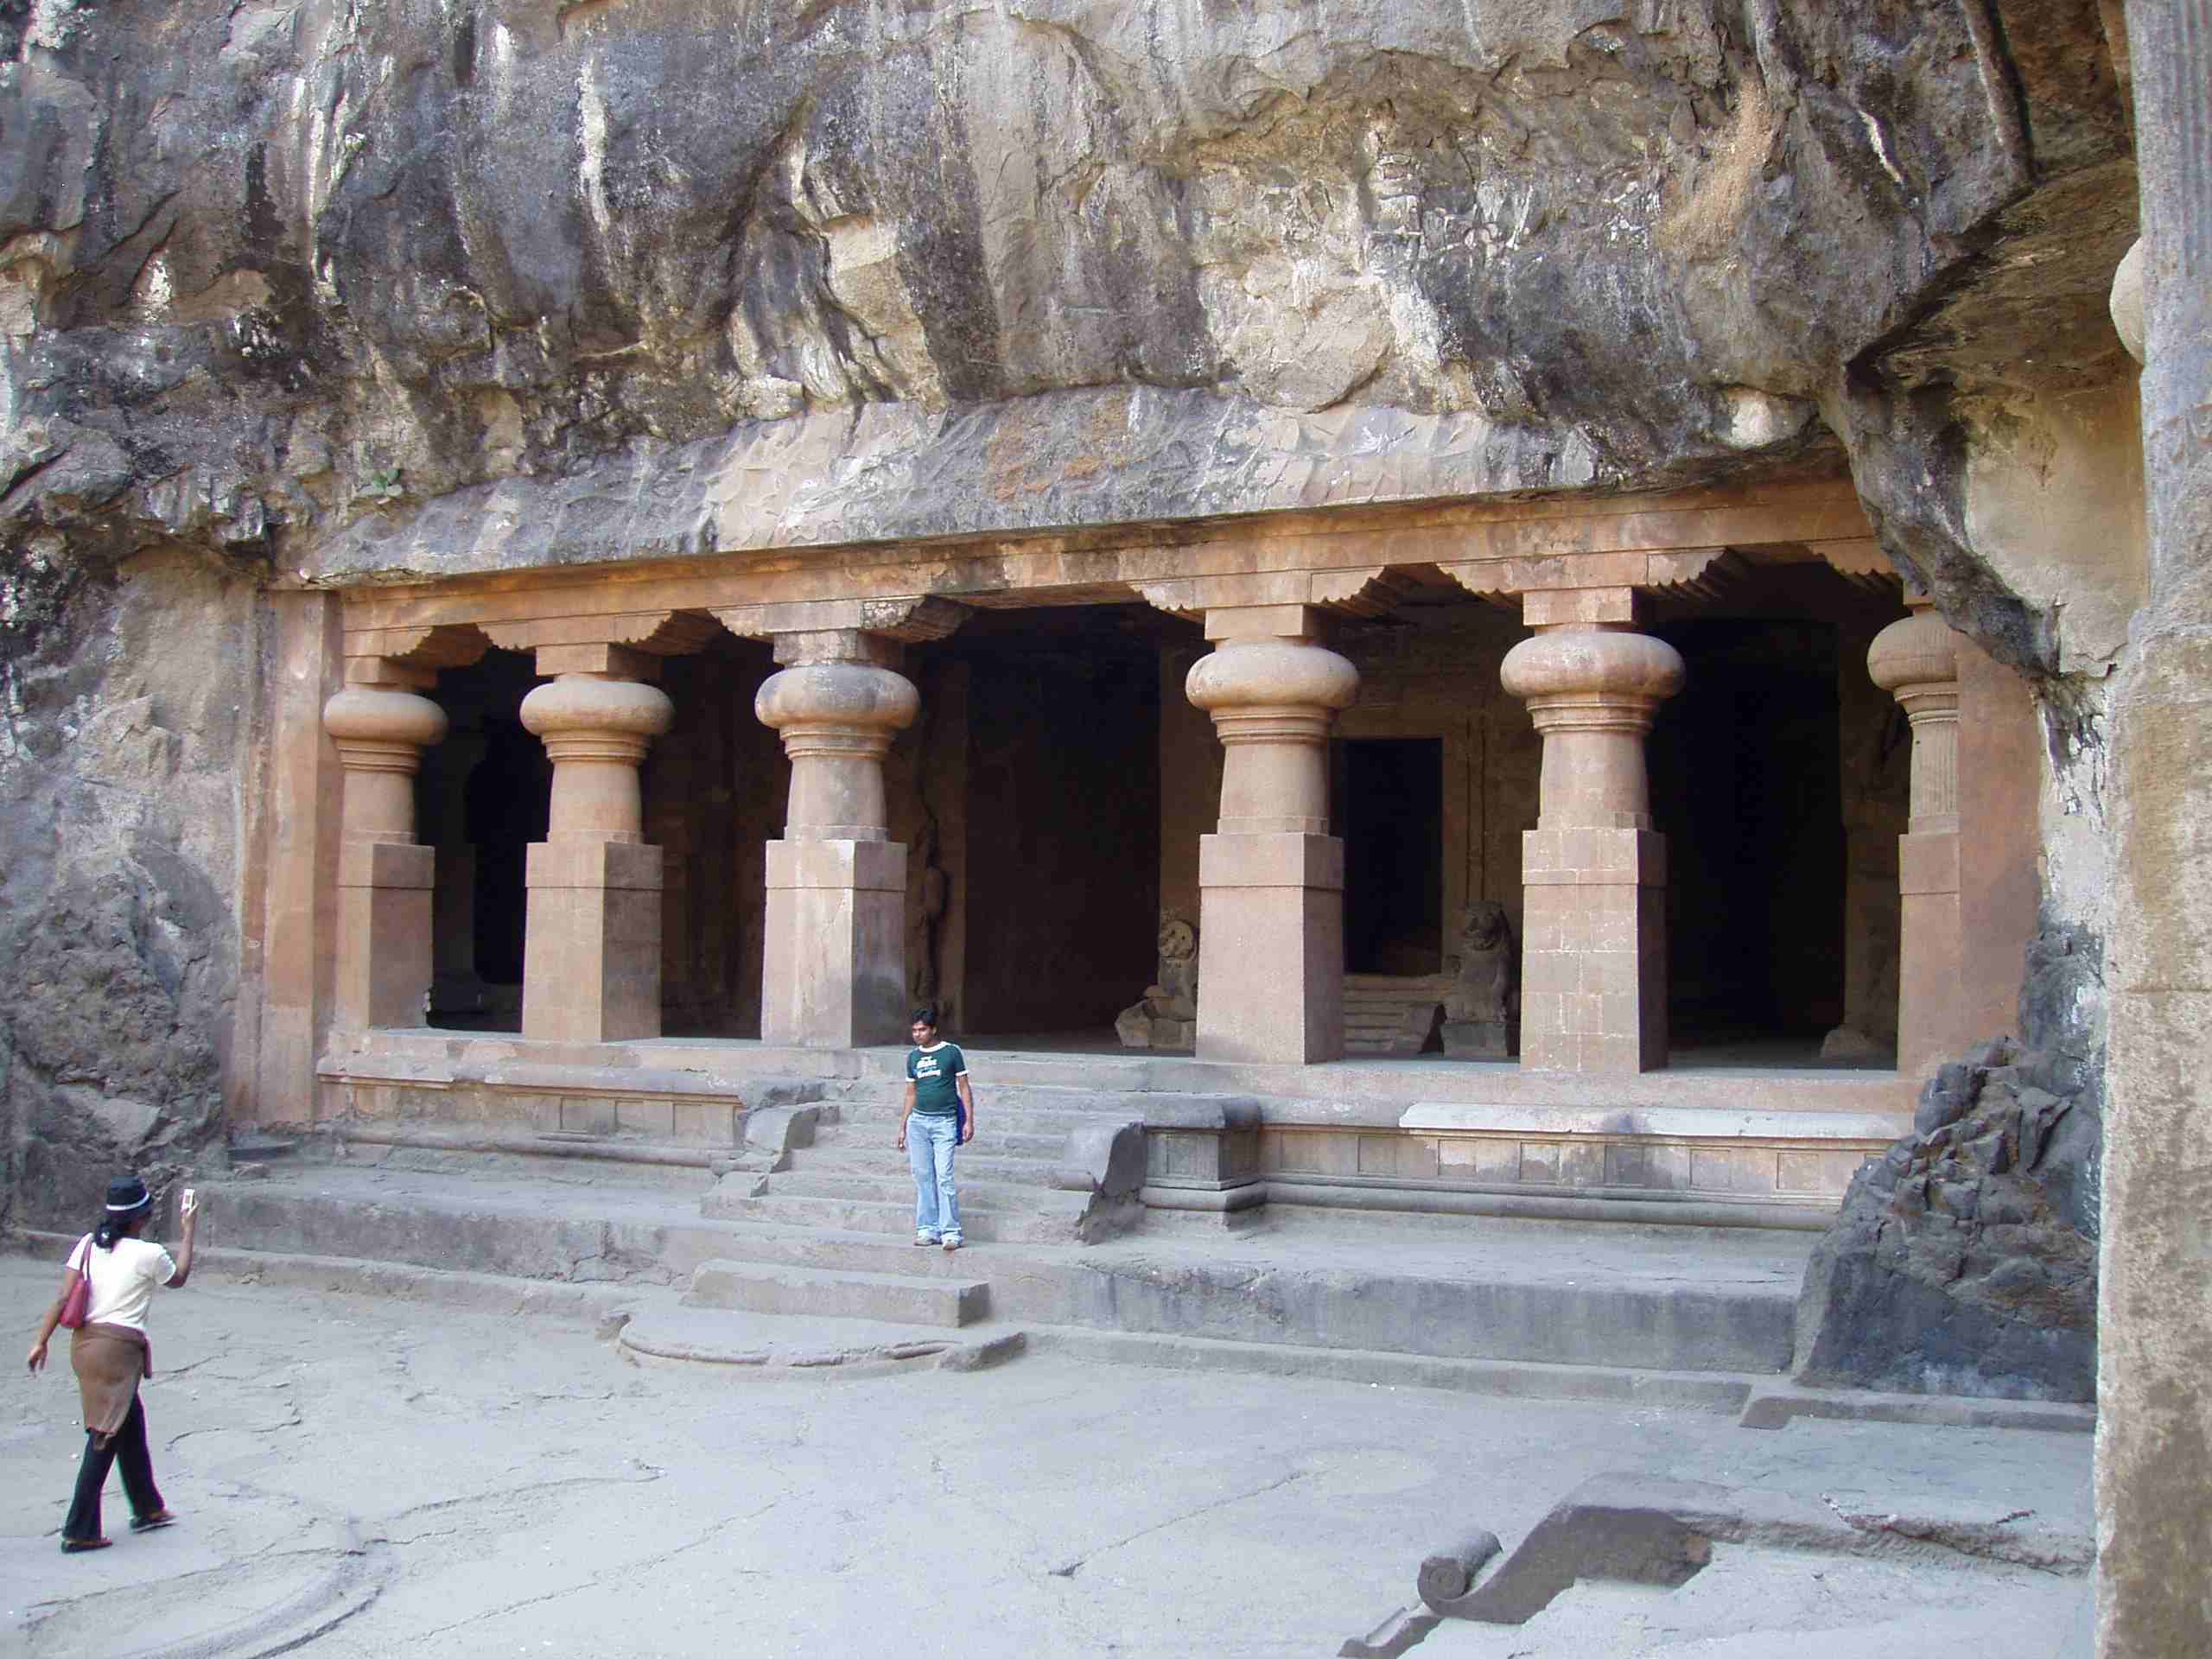 Entrance to the caves in Elephanta